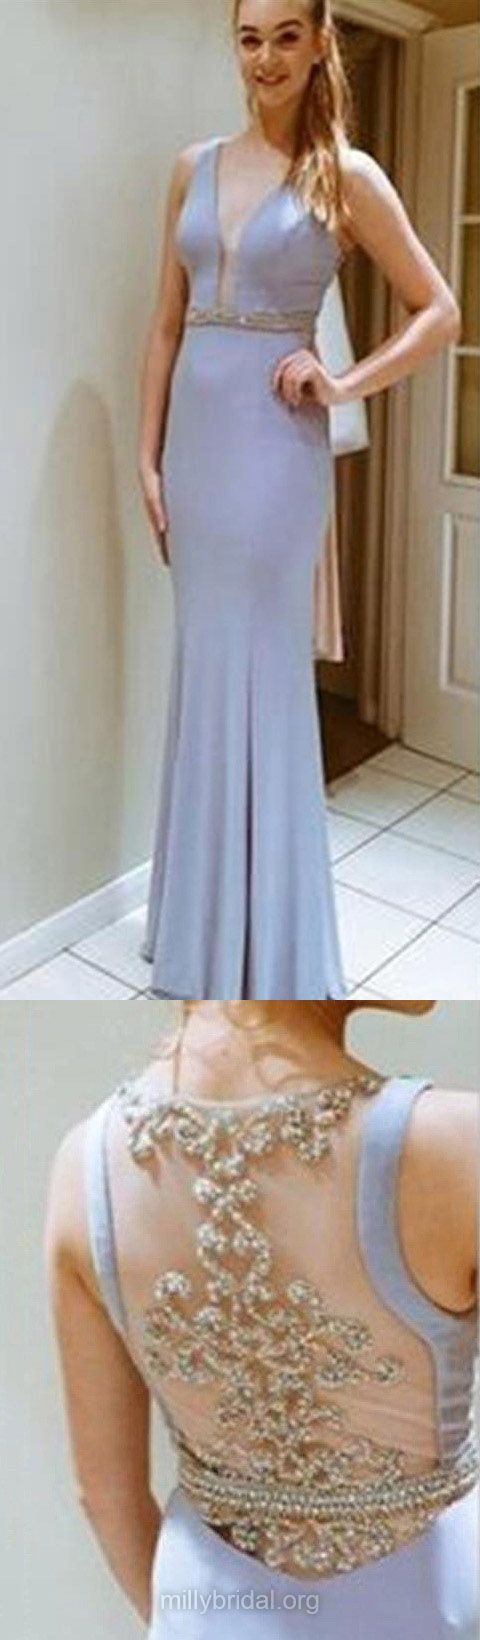 Blue prom dresses long prom dresses for teens sheathcolumn